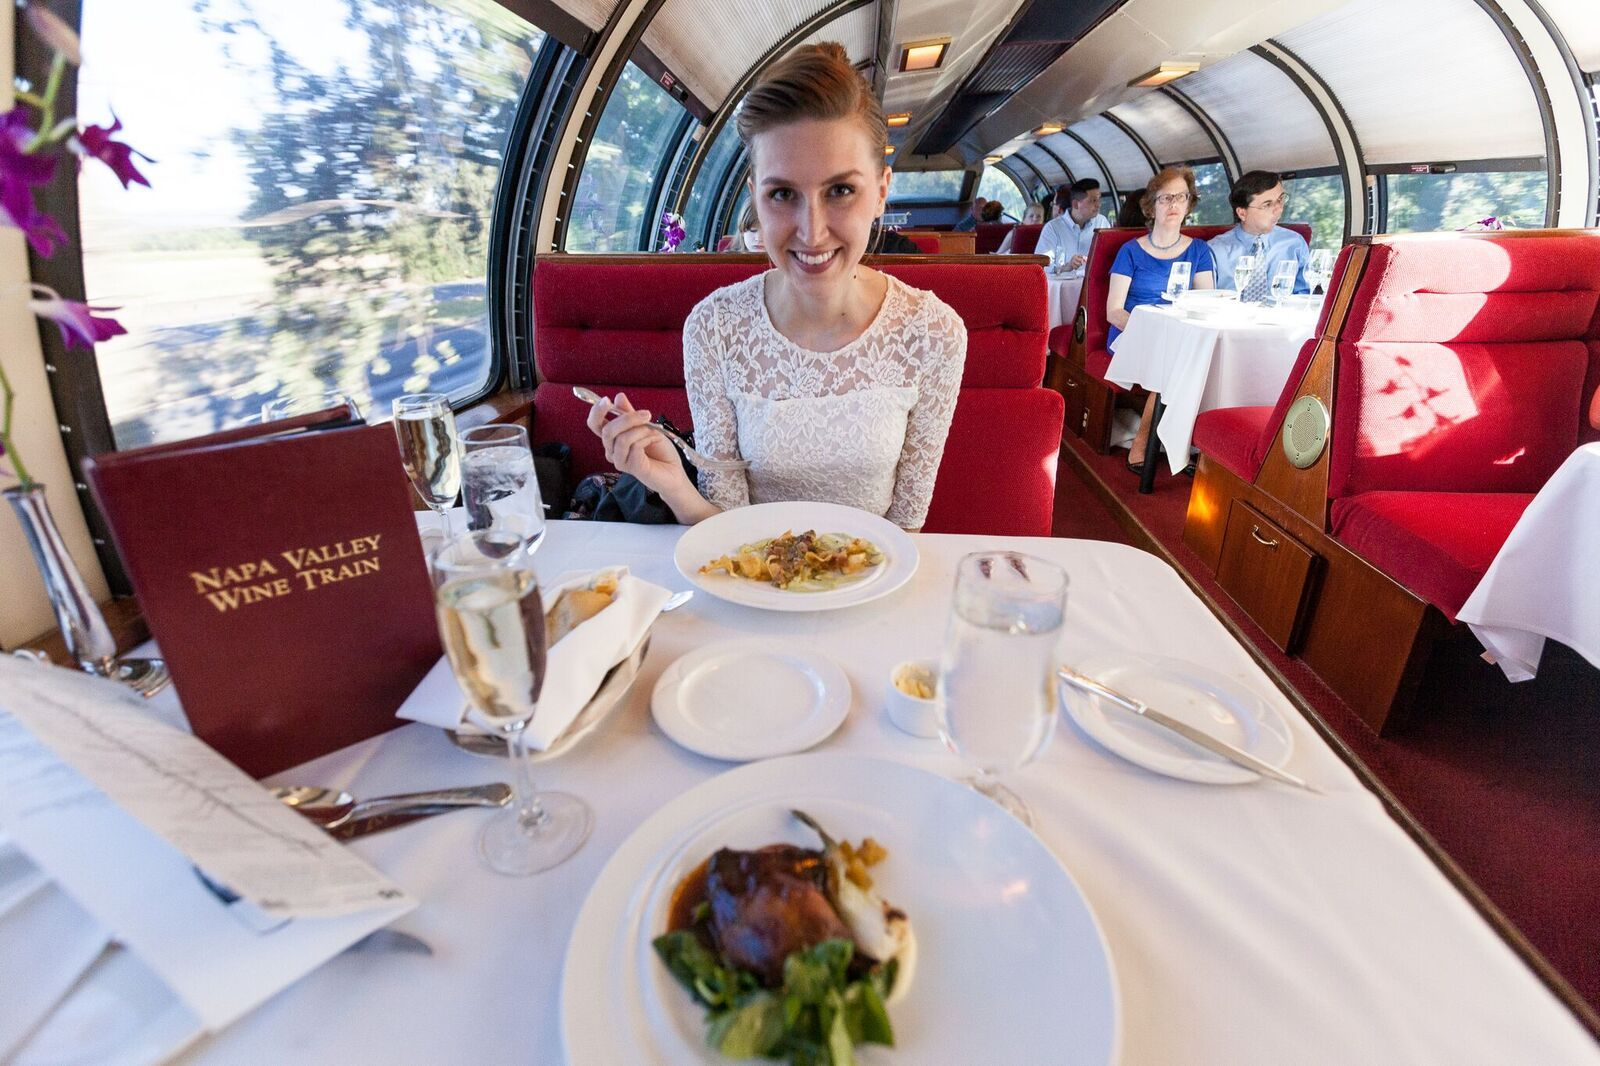 Romantic Dinner Napa Romance Package Napa Napa Valley Wine Train Wine Train Napa Valley Wine Train Napa Valley Wine